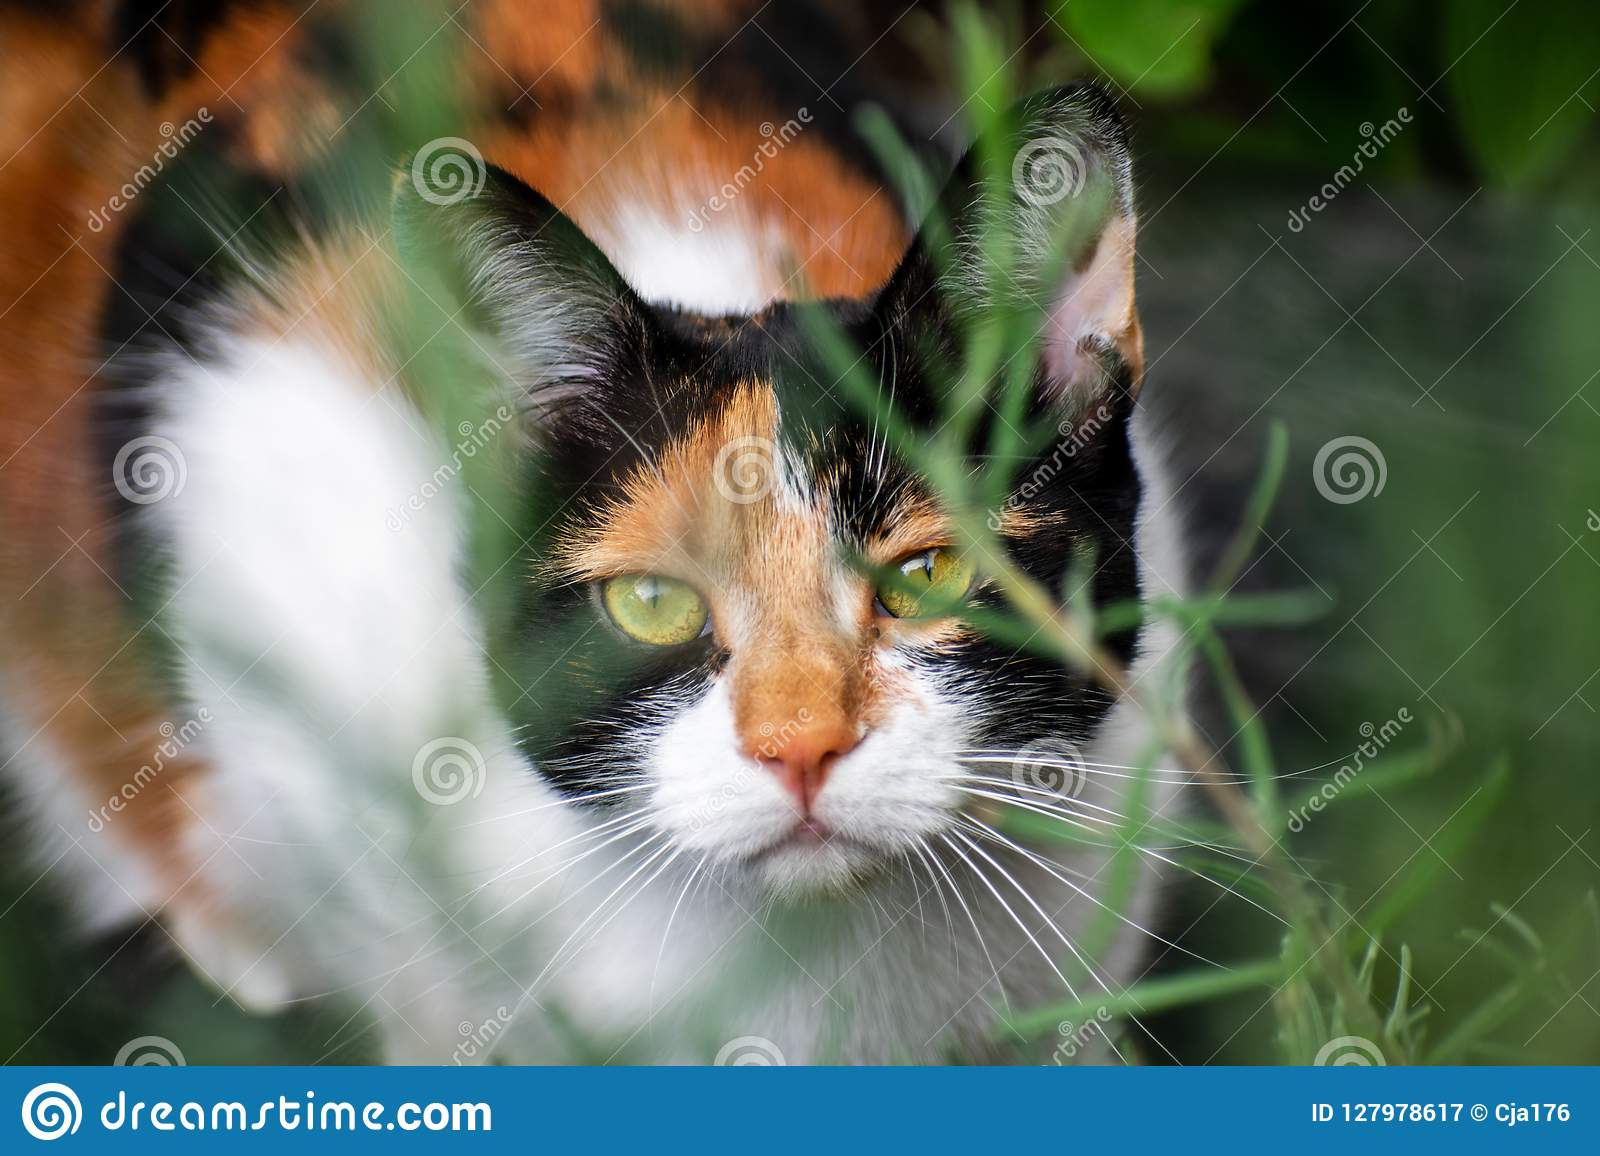 A young tortoiseshell calico cat hiding in undergrowth